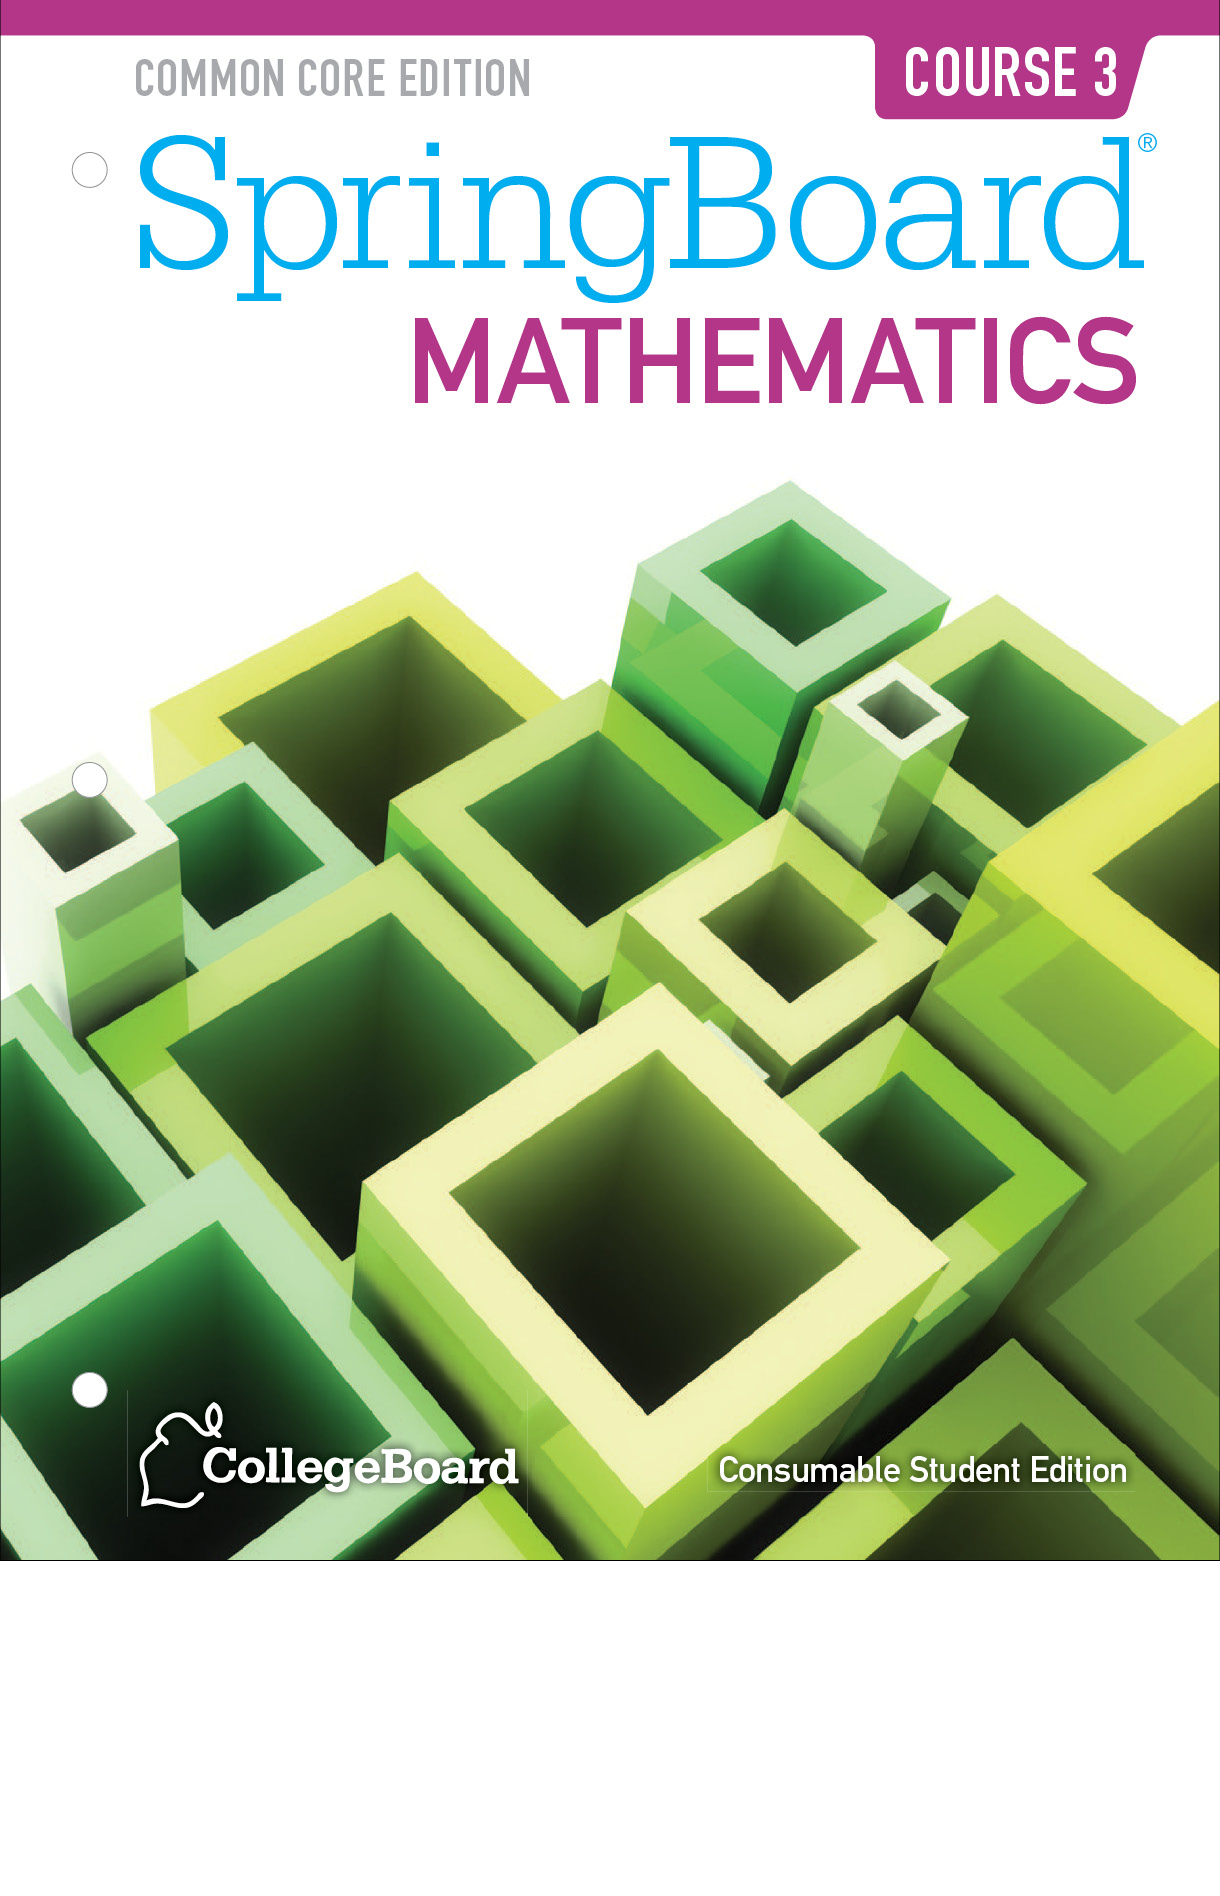 Book cover of the Common Core Edition of SpringBoard Mathematics Course three from CollegeBoard. It has differently sized open square blocks on their side.